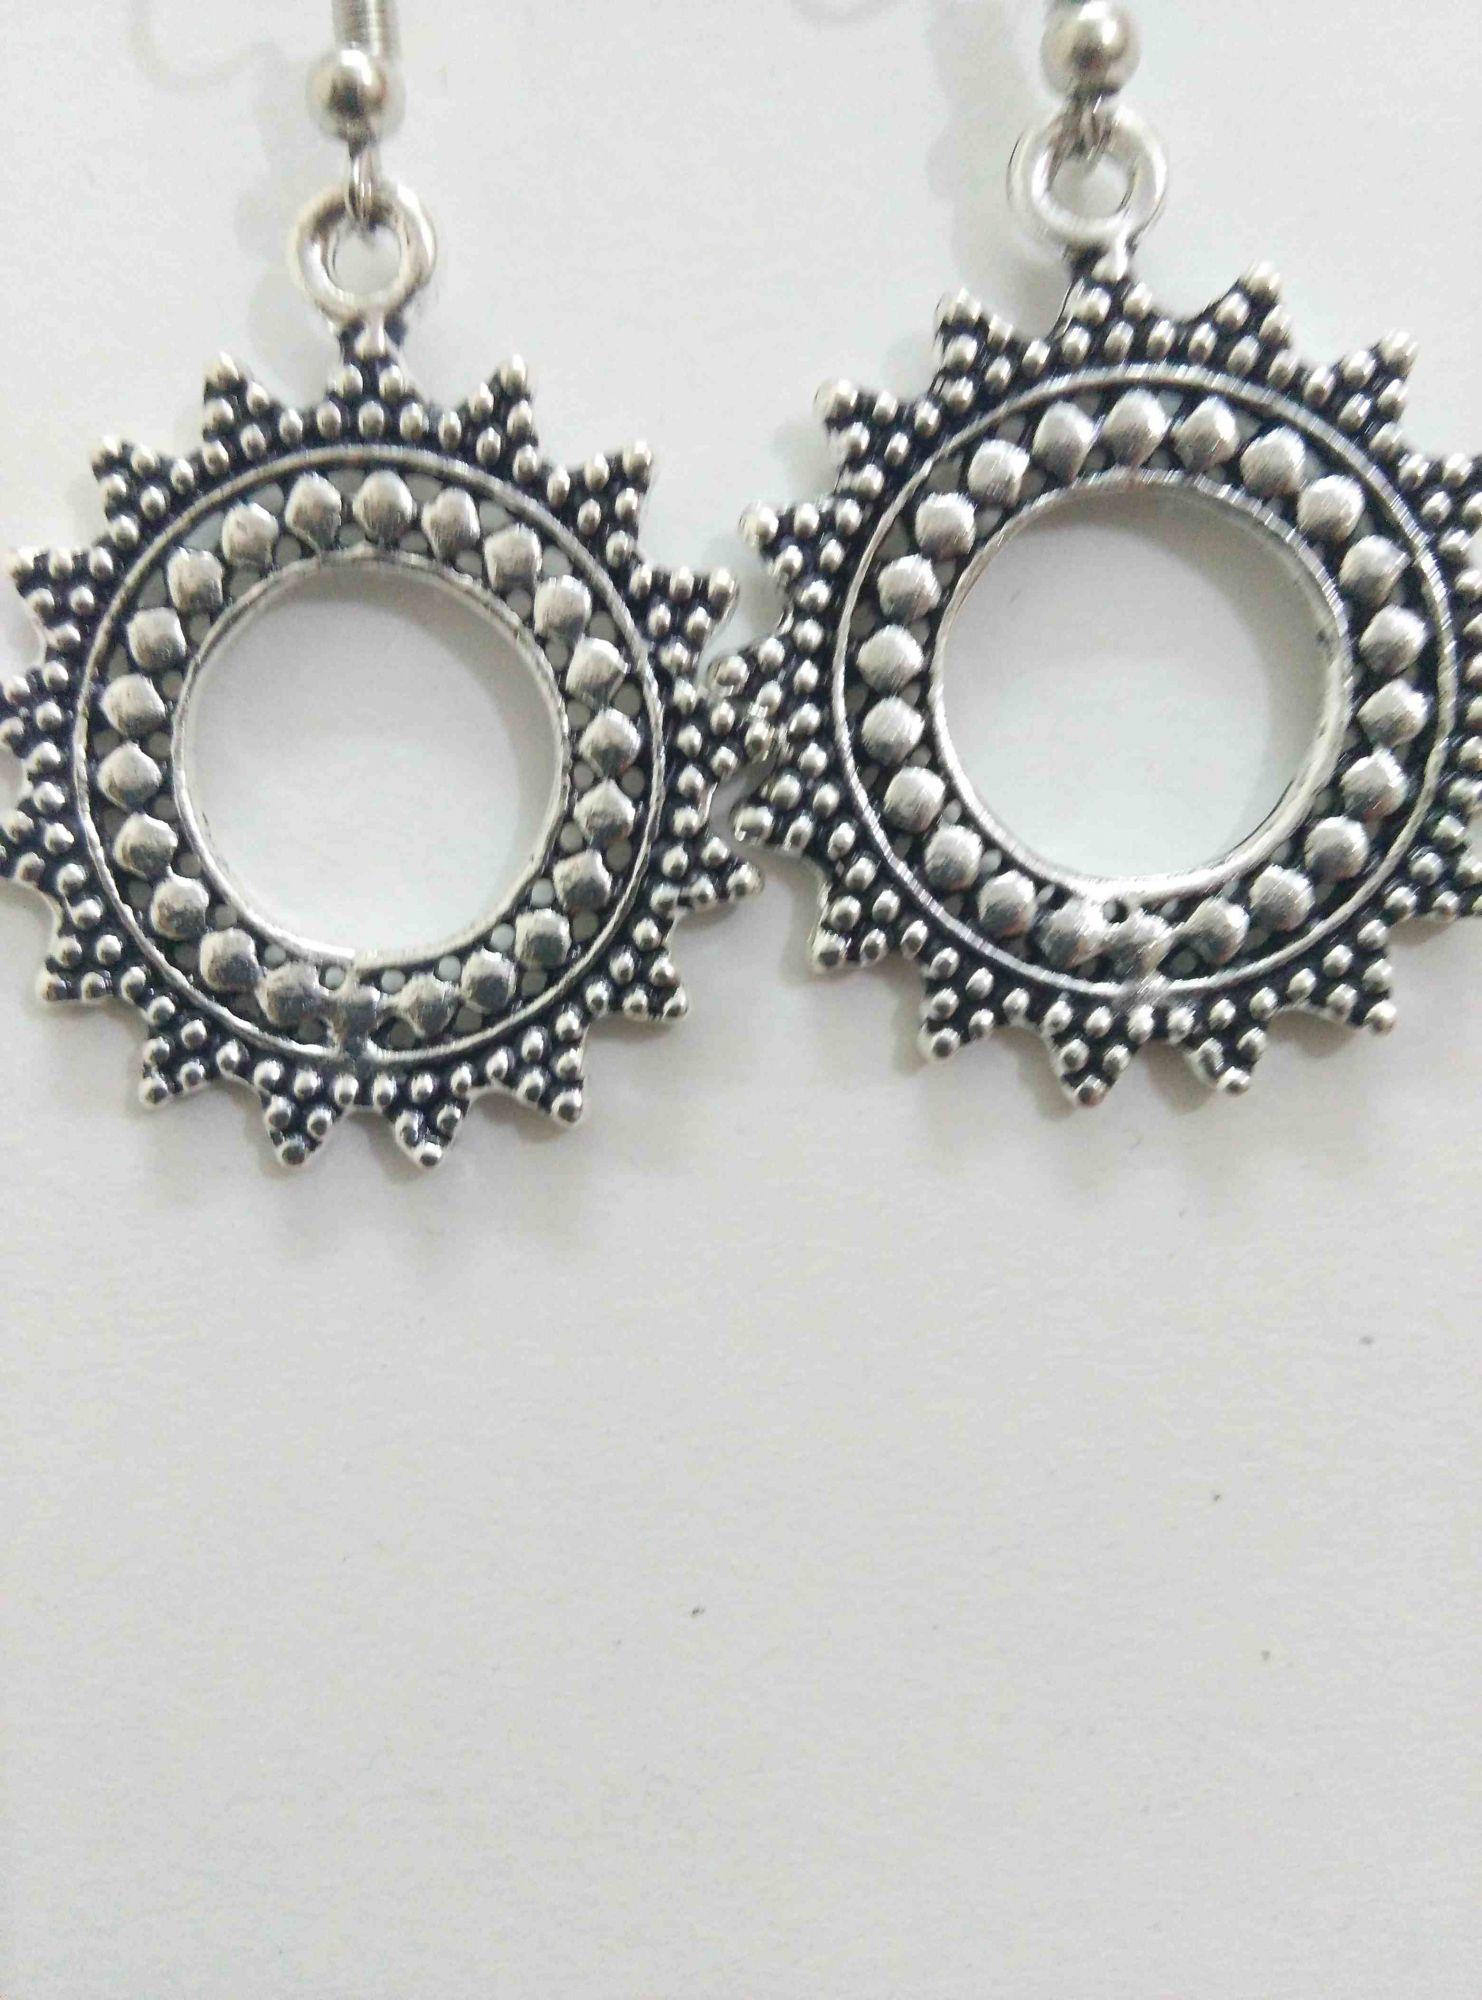 rajasthani l earring earrings products jhumka